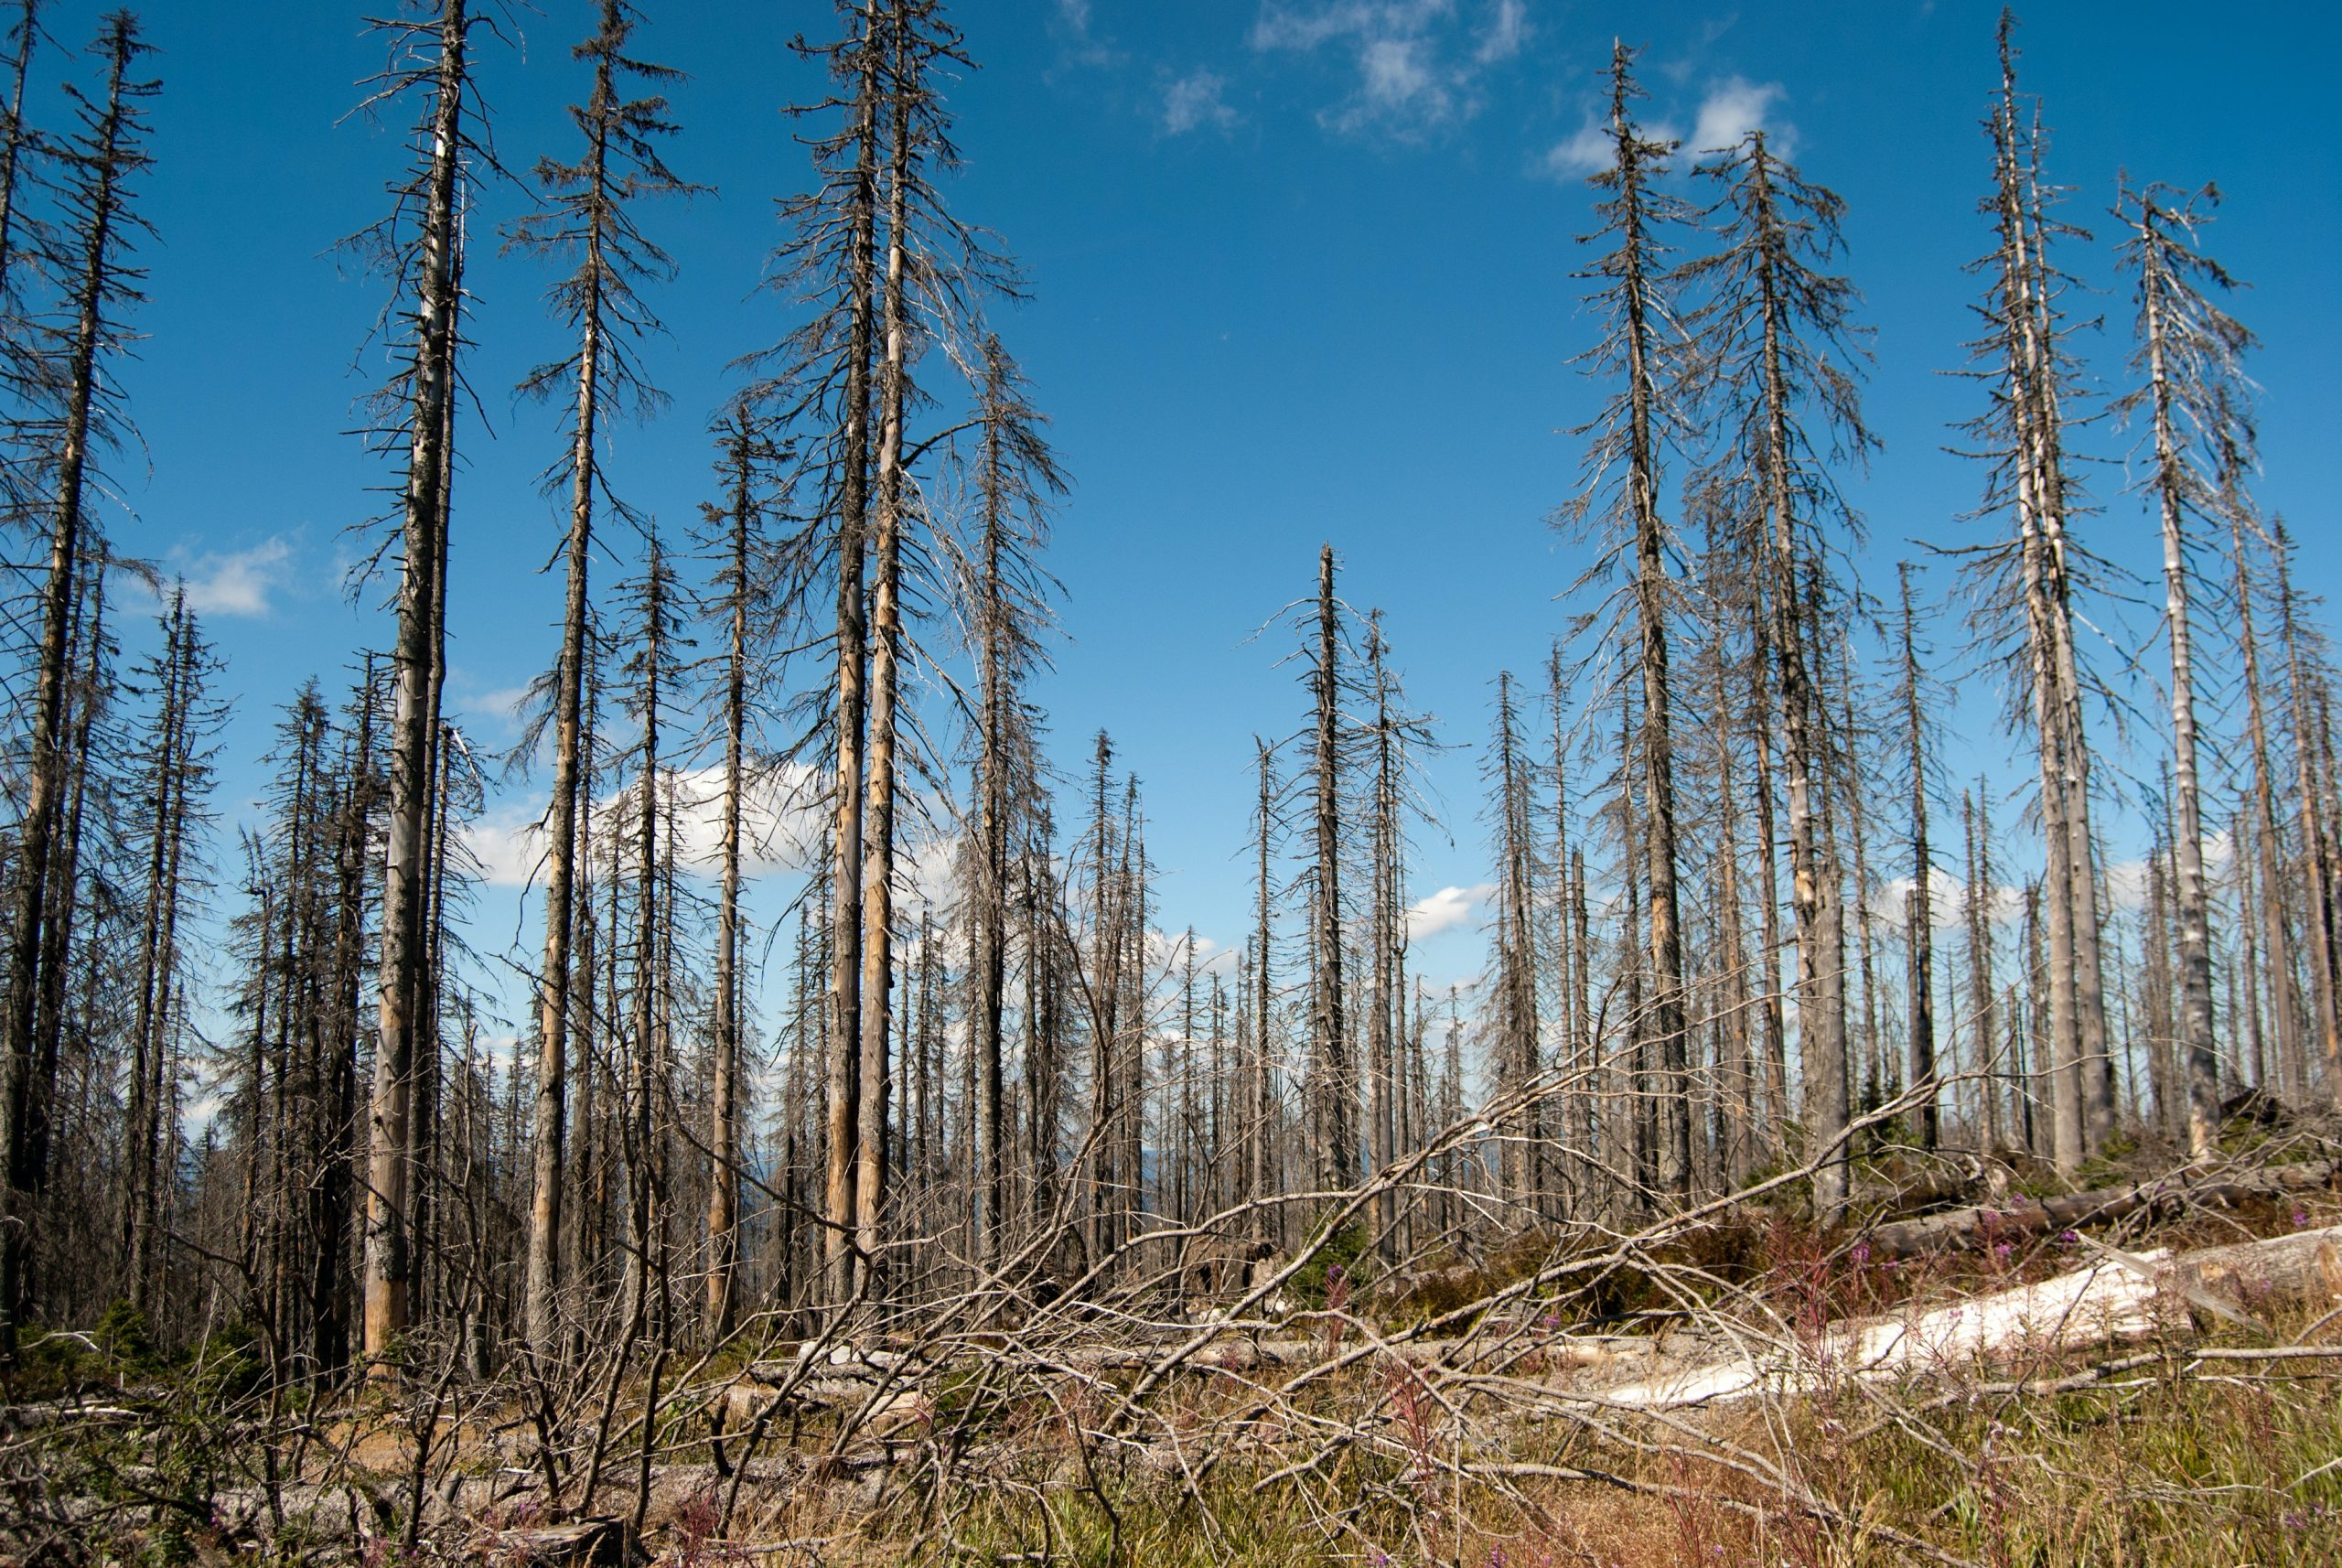 Forest of bare, damaged trees